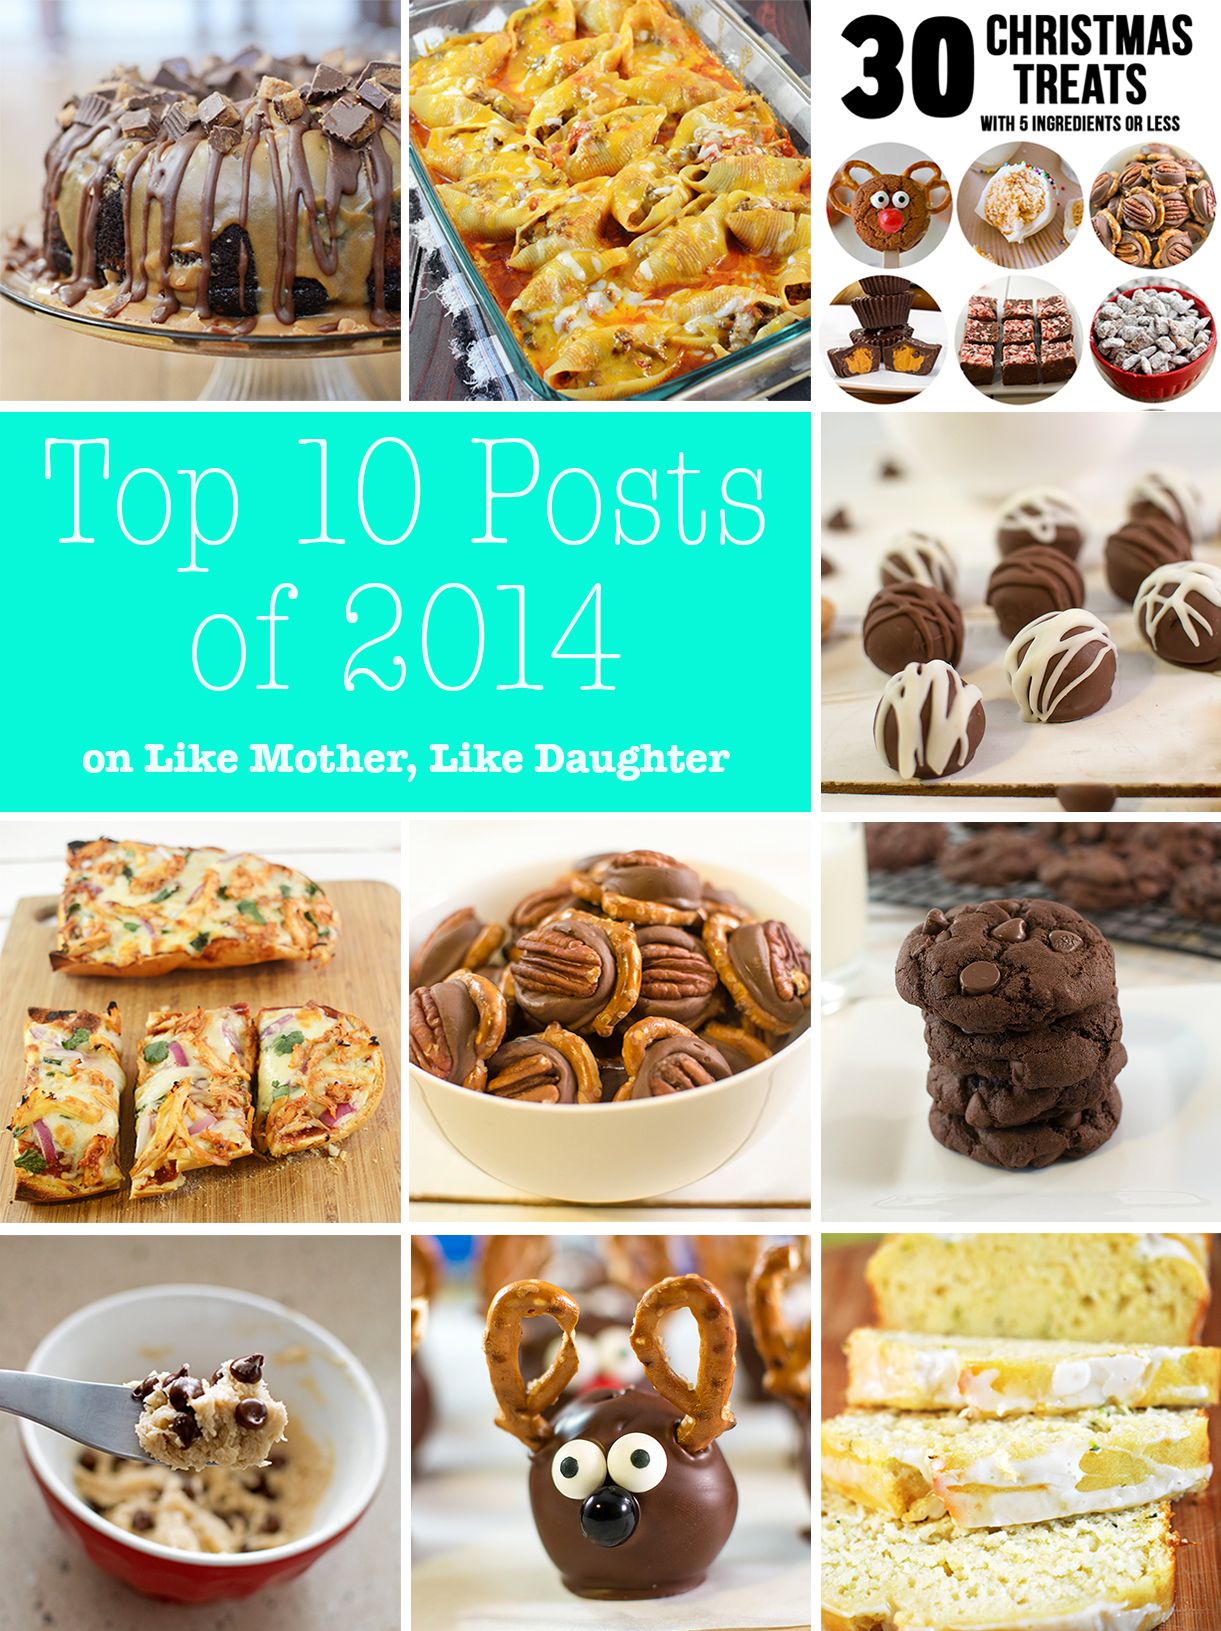 Top 10 Posts of 2014 - our top 10 most popular posts from the year of 2014. So many delicious choices from BBQ french bread pizza to peanut butter chocolate bundt cake!